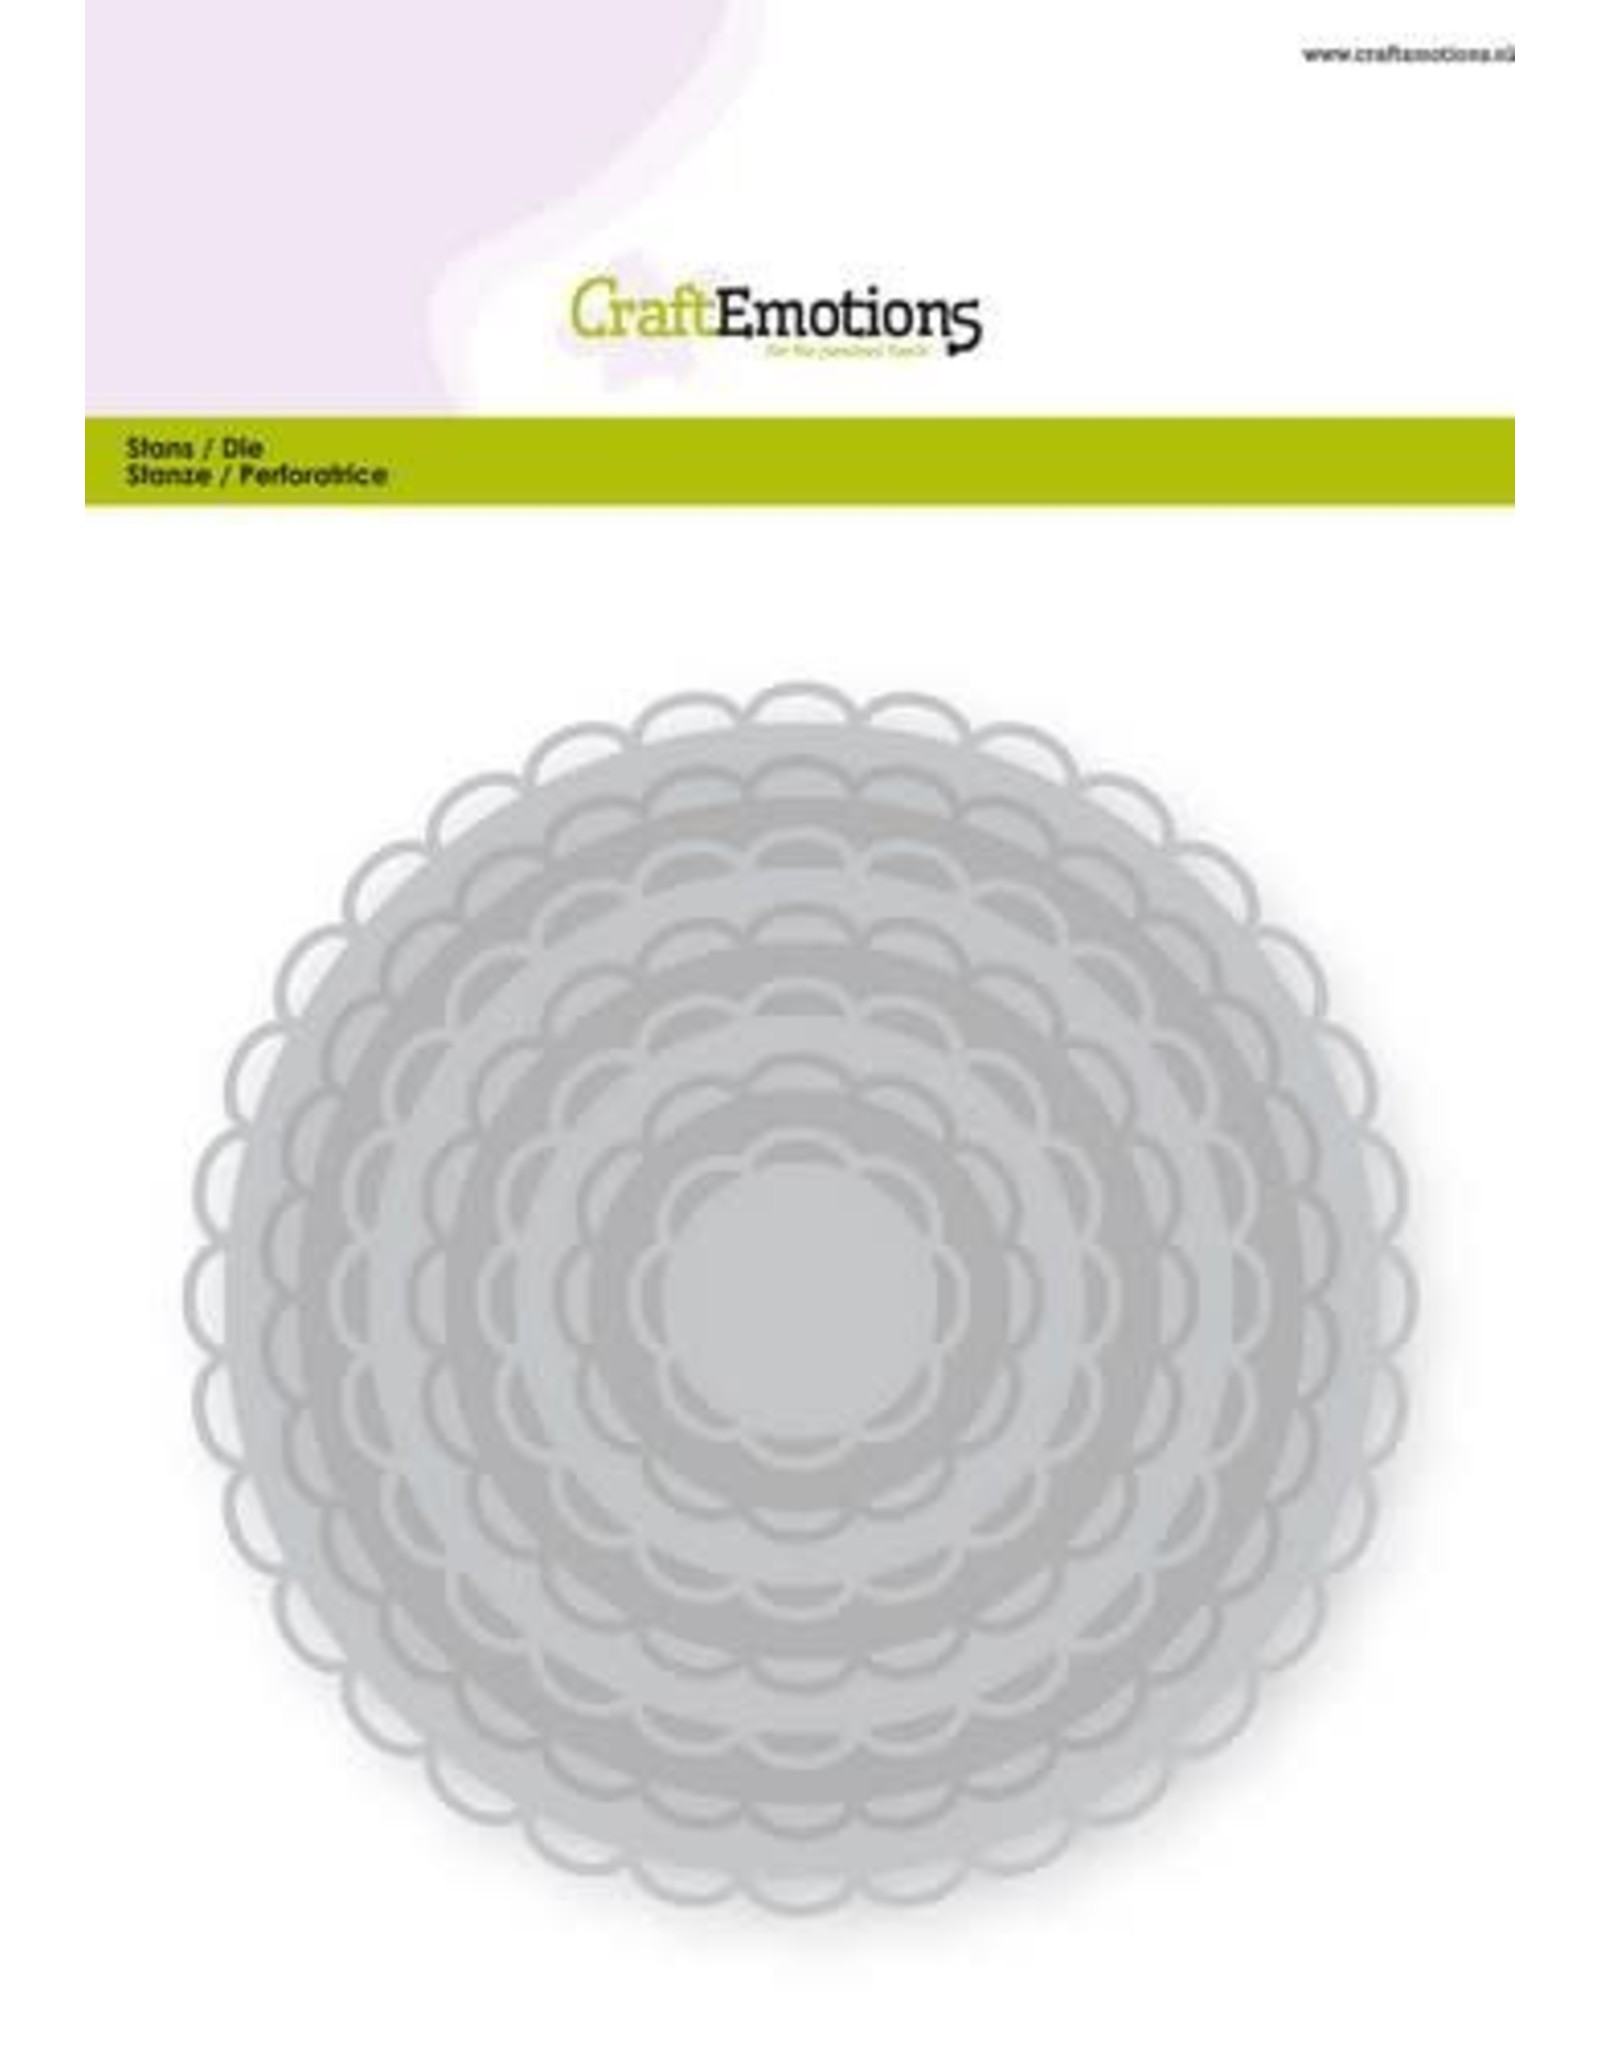 Craft Emotions CraftEmotions Big Nesting Die - cirkels scalop XL open Card 150x160 3,6-13,0cm